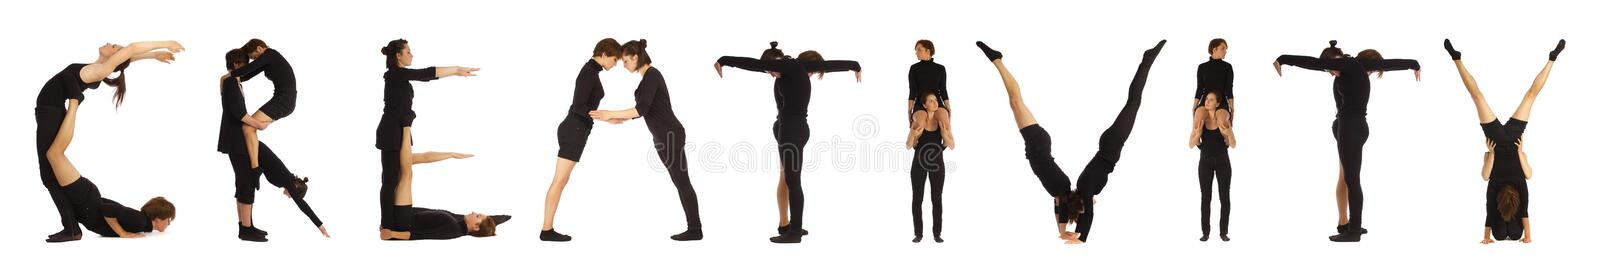 Black dressed people forming word CREATIVITY stock photography